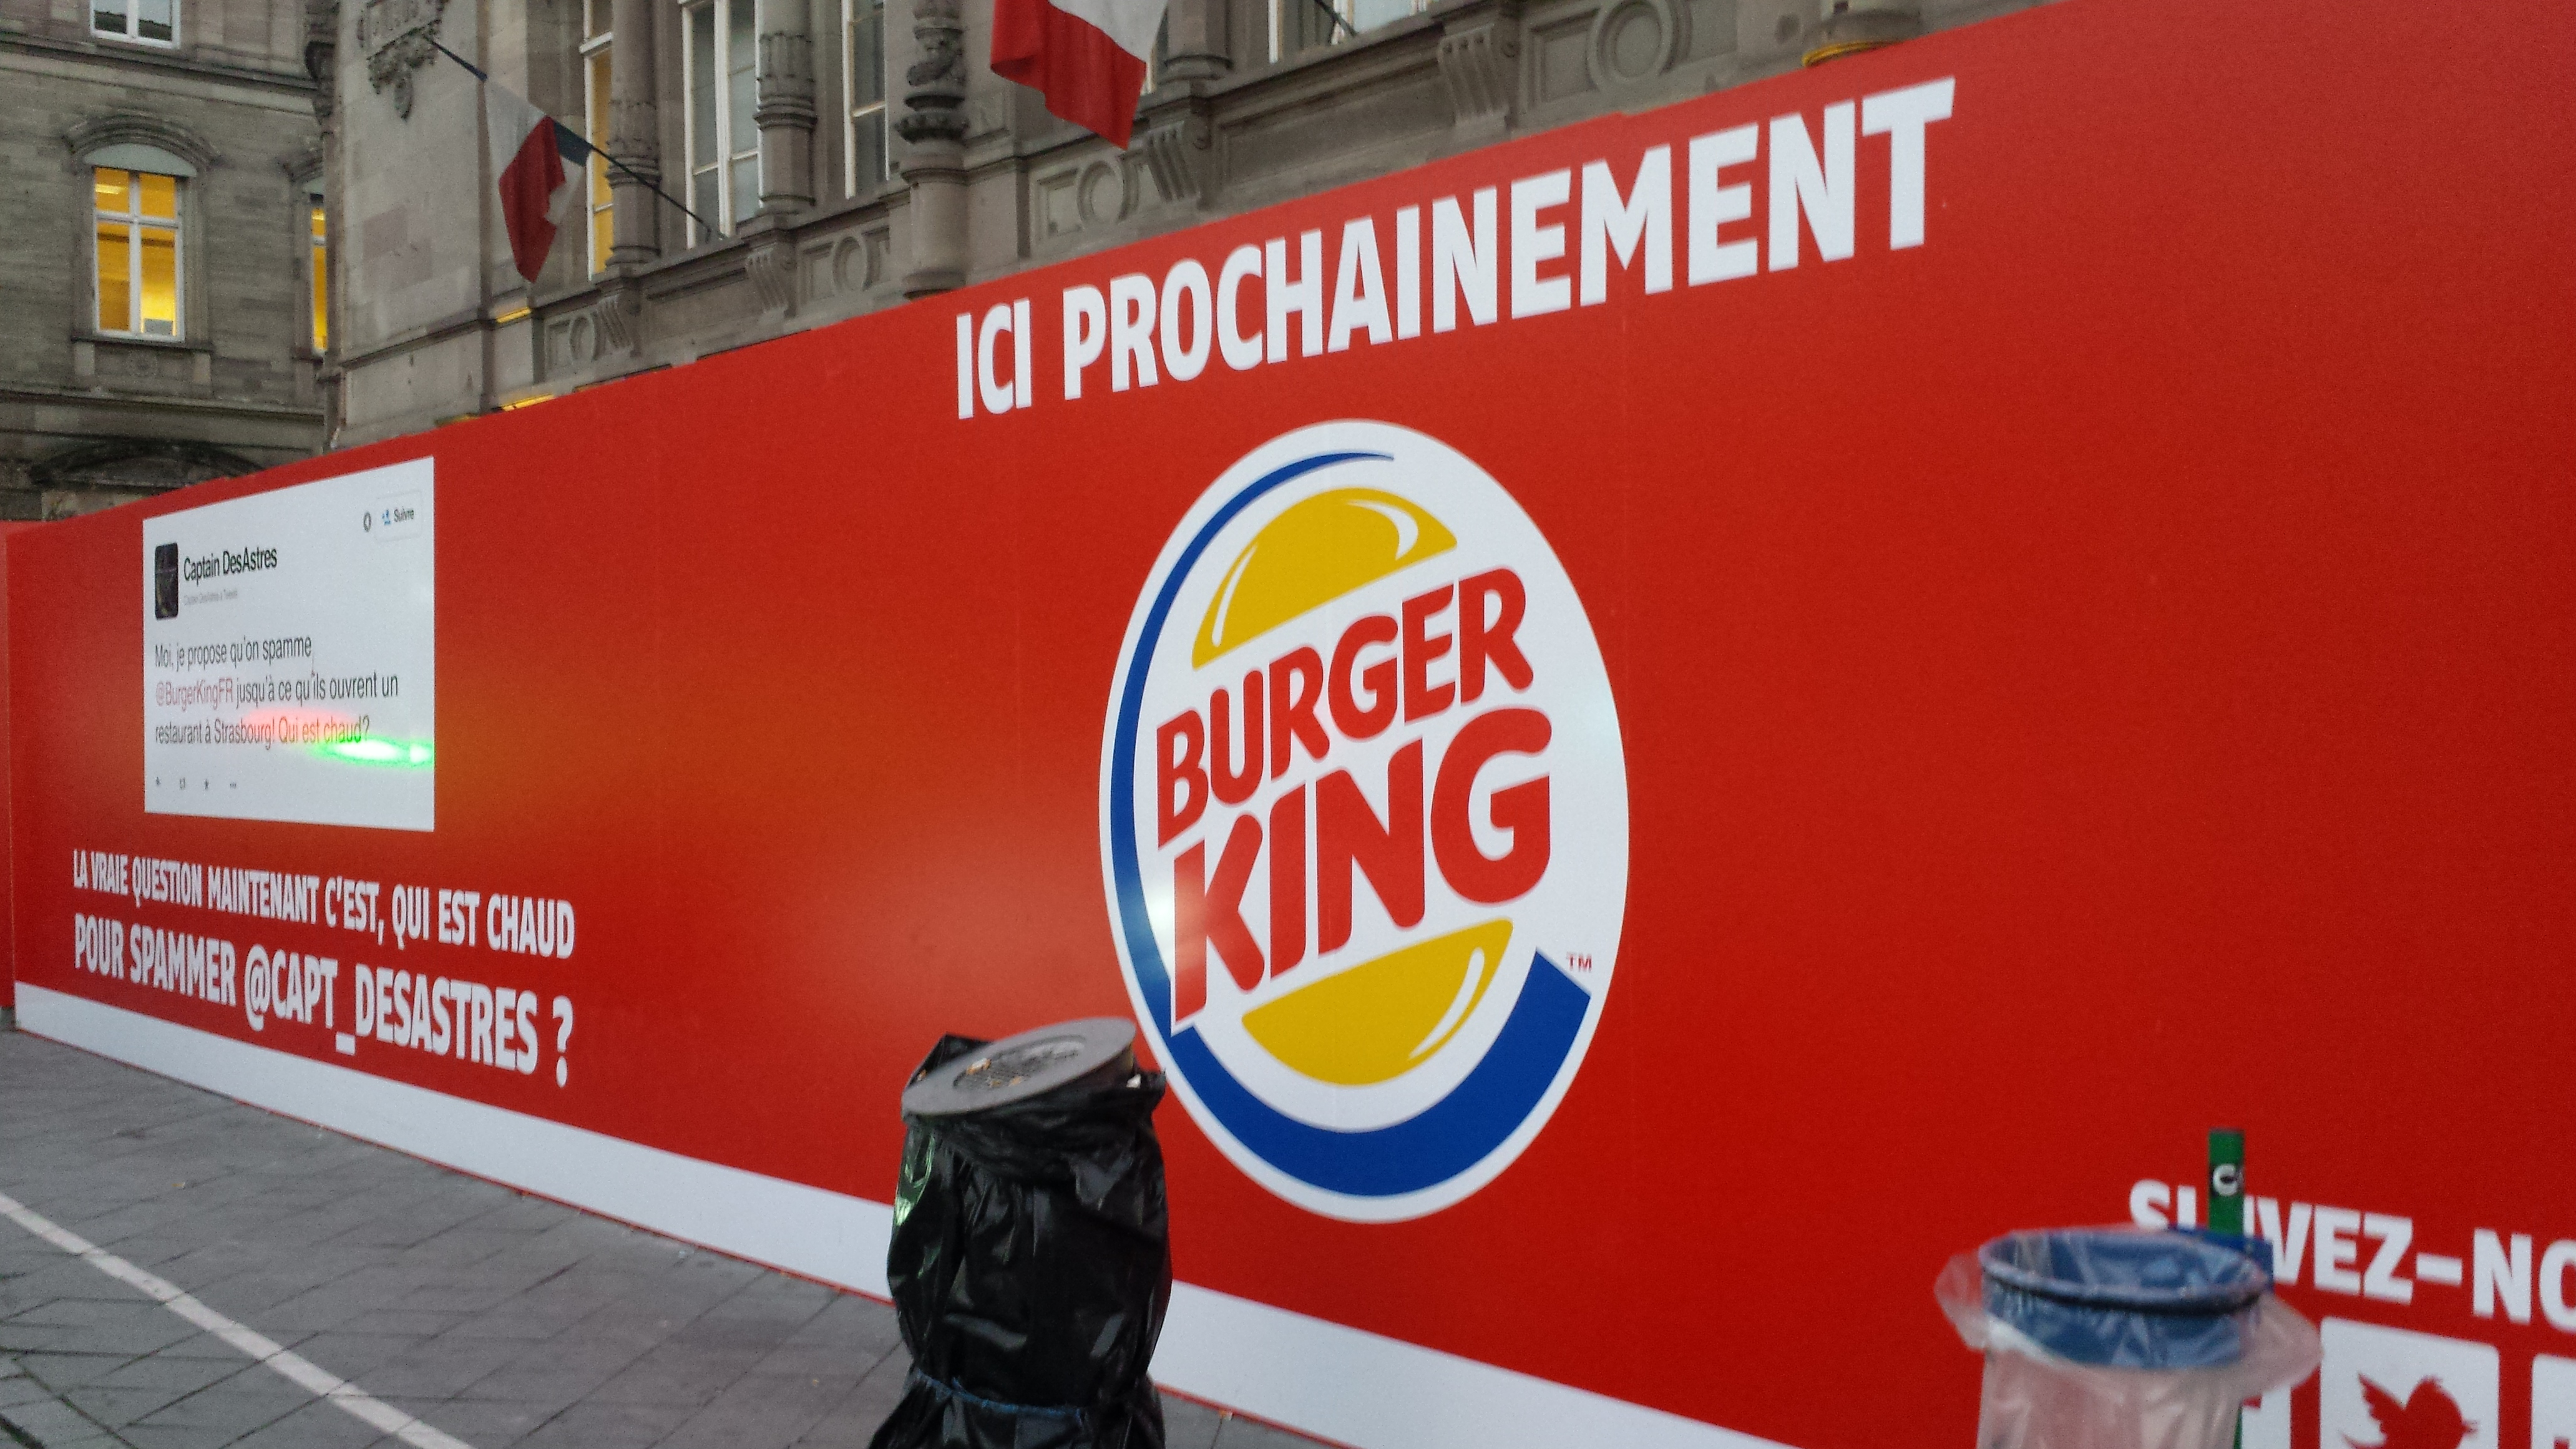 burger king pousse cot de la verri re de la gare de strasbourg. Black Bedroom Furniture Sets. Home Design Ideas